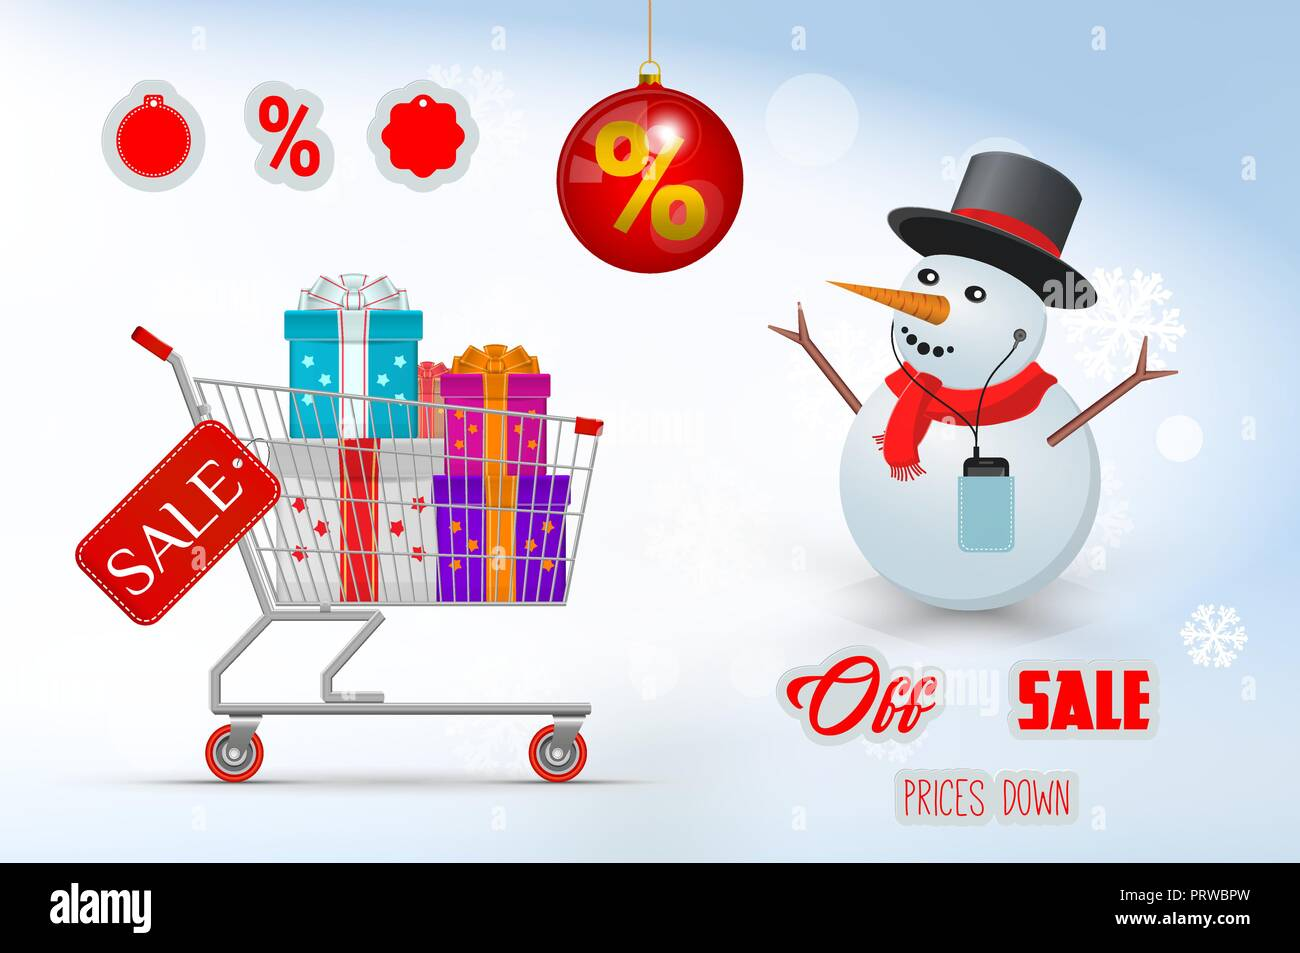 Christmas Sale Set. Cart with Gifts and Joyful Snowman. Merry ...